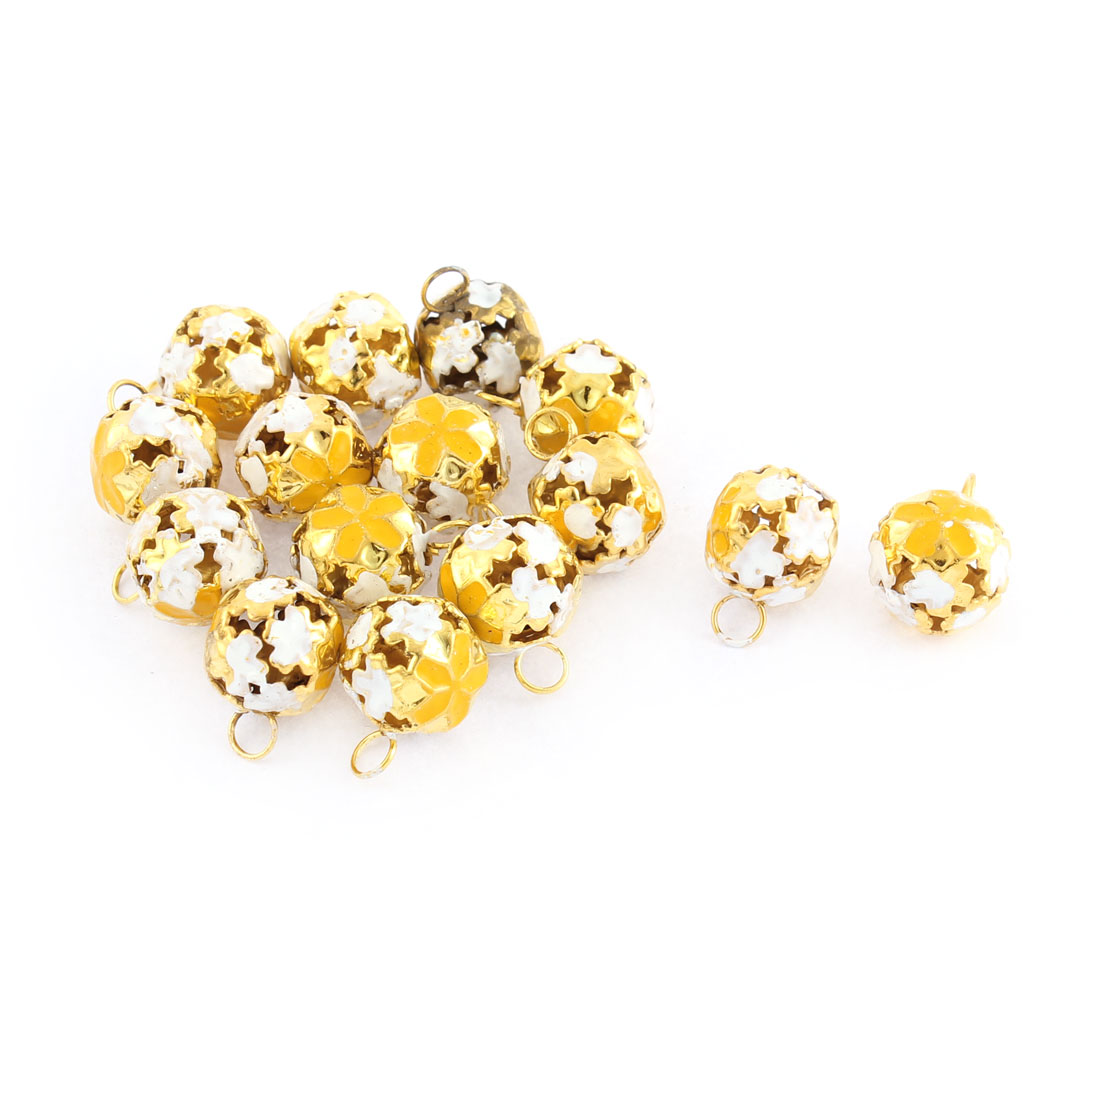 Yellow Hollow Out Flower Decor Christmas Tree Jingle Bell 0.24 Inch 15Pcs